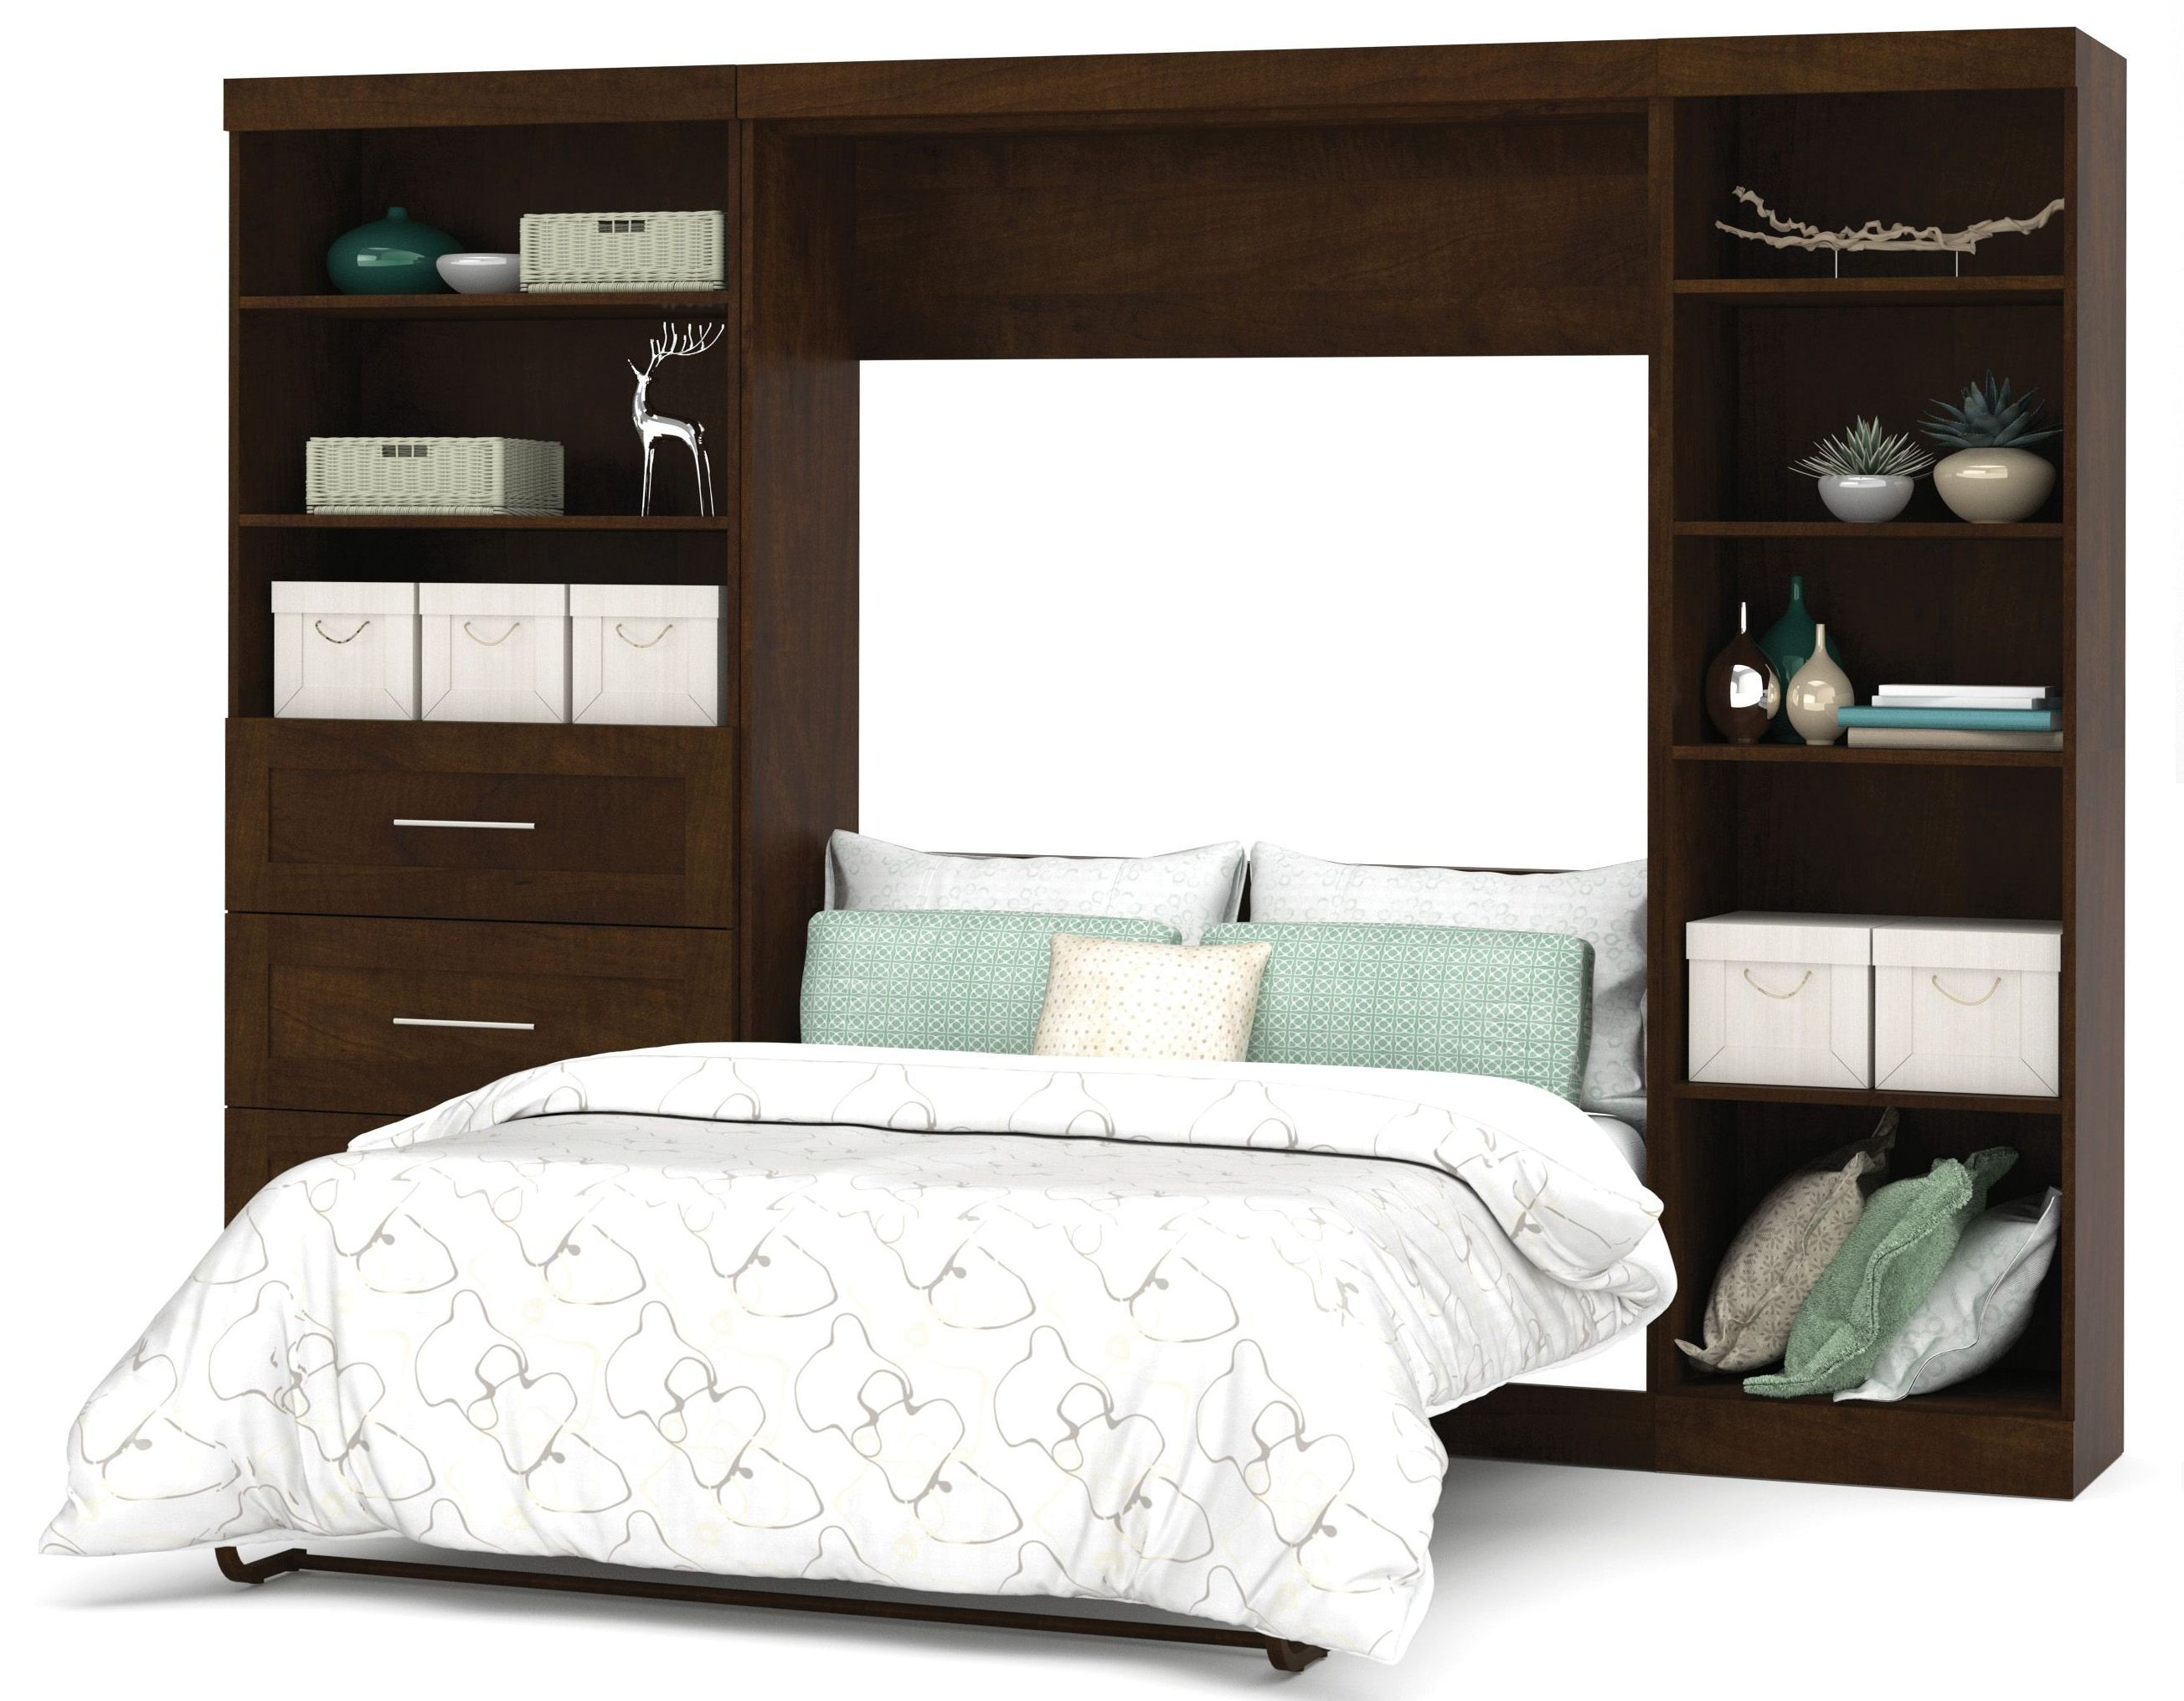 Pur Chocolate 120 Quot Full Wall Bed With Left Side Drawers